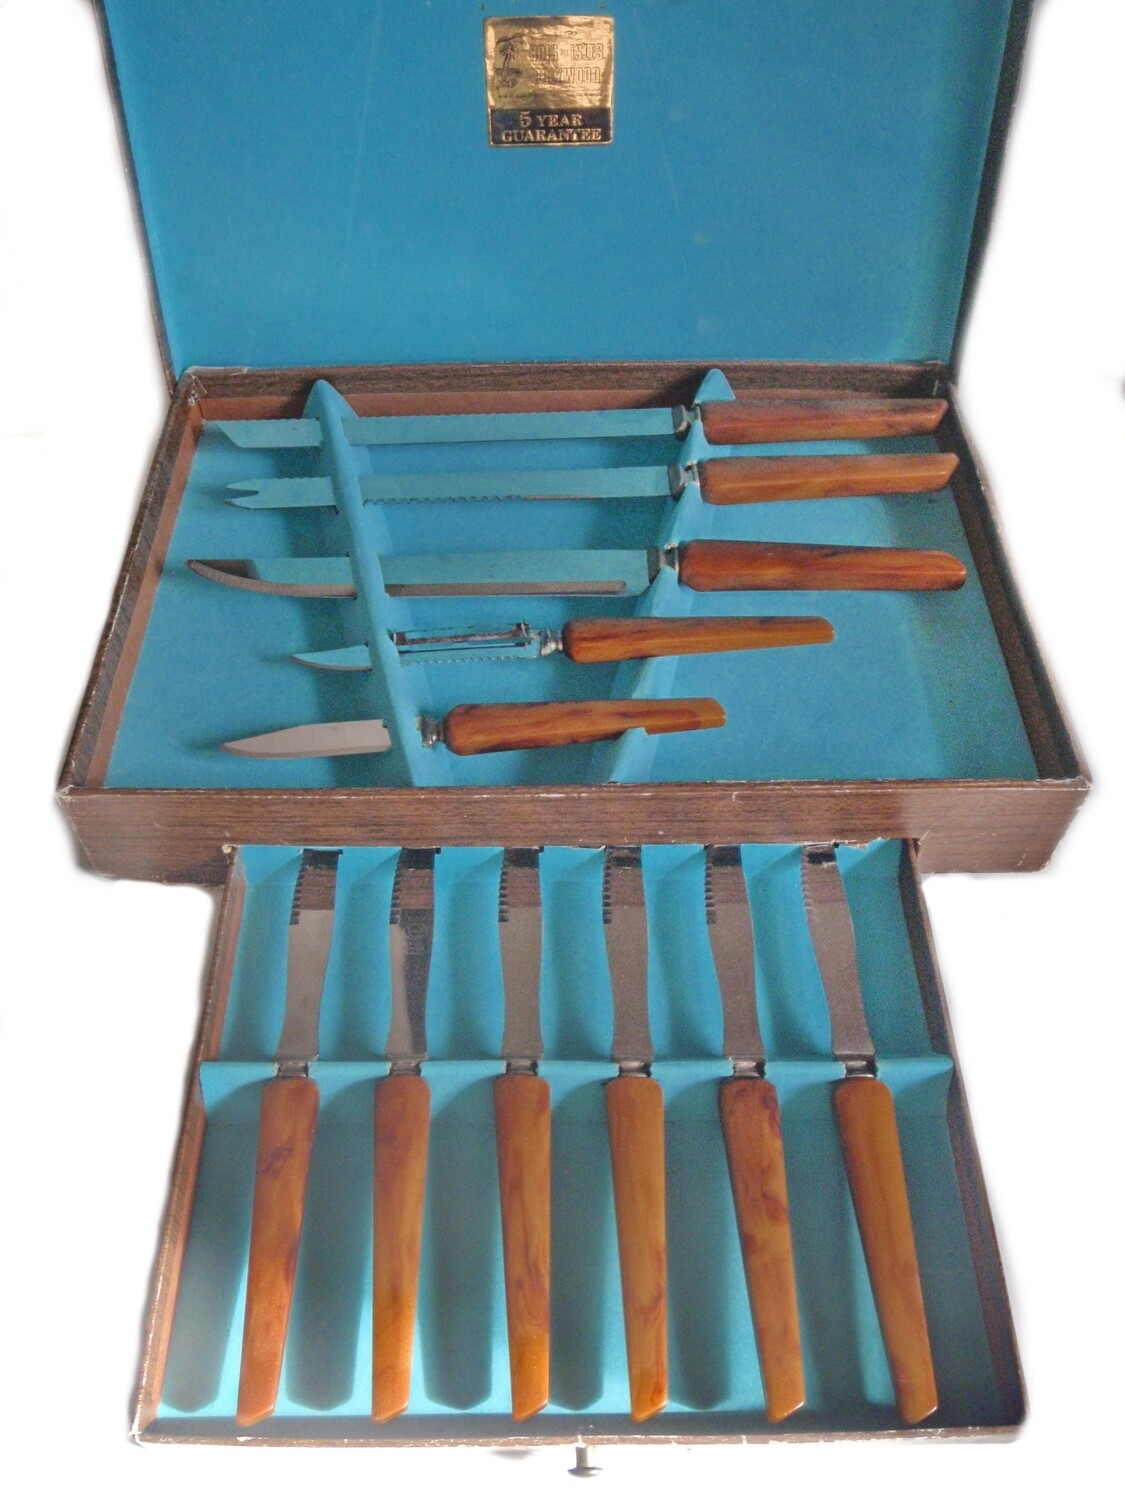 11pc Sheffield Steel Polywood Carving Set with 6 Steak Knives in Original Case